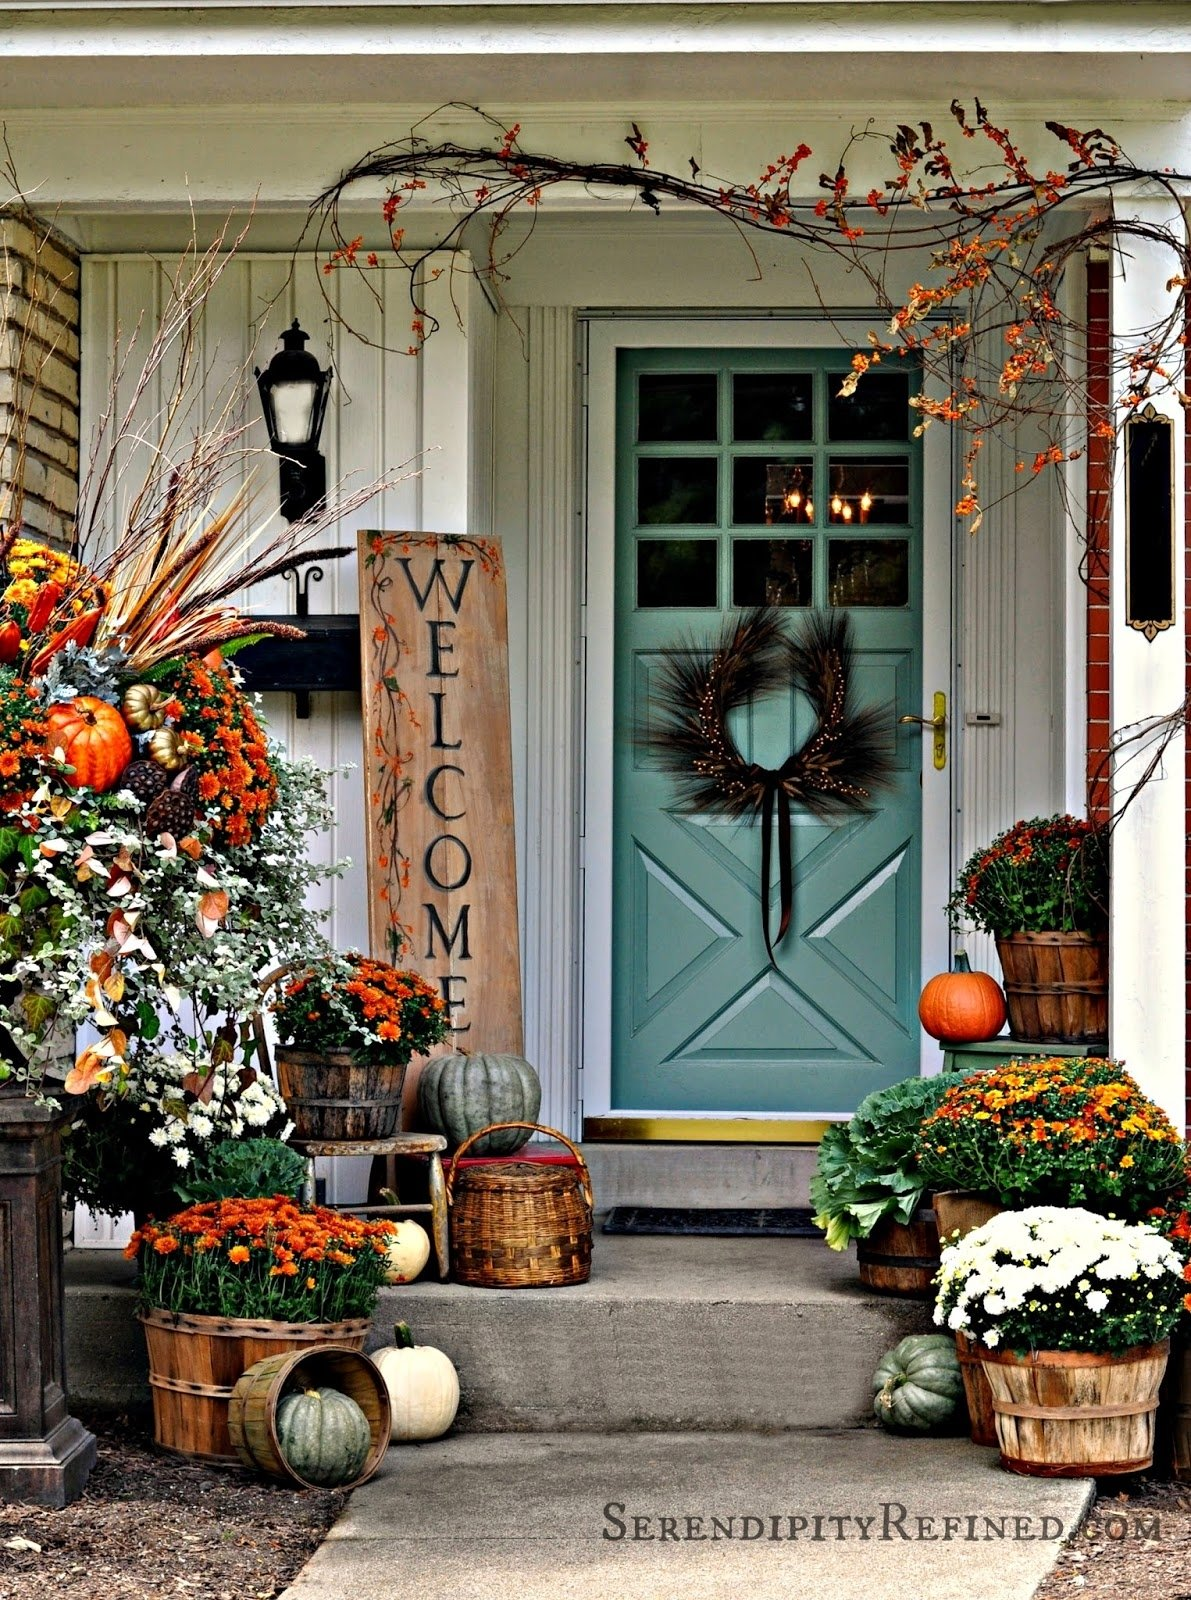 10 Lovely Front Porch Decorating Ideas For Fall 85 pretty autumn porch decor ideas digsdigs 2 2020